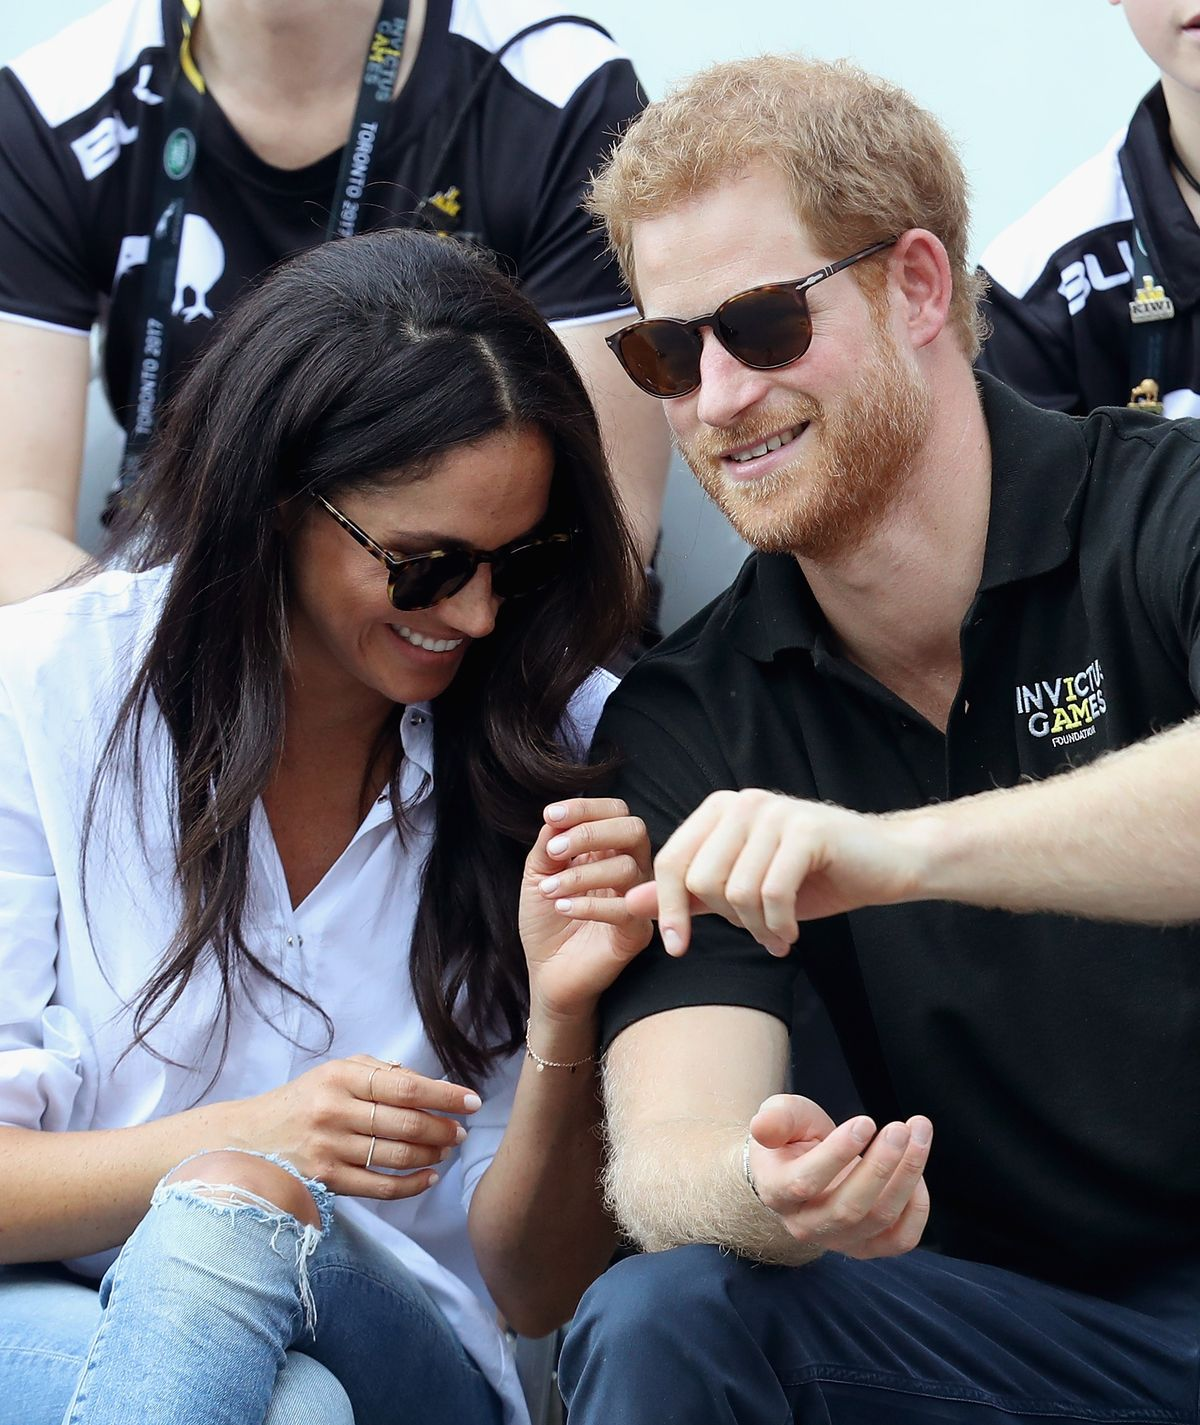 Duchess Meghan and Prince Harry at a Wheelchair Tennis match during the Invictus Games on September 25, 2017, in Toronto, Canada   Photo: Chris Jackson/Getty Images